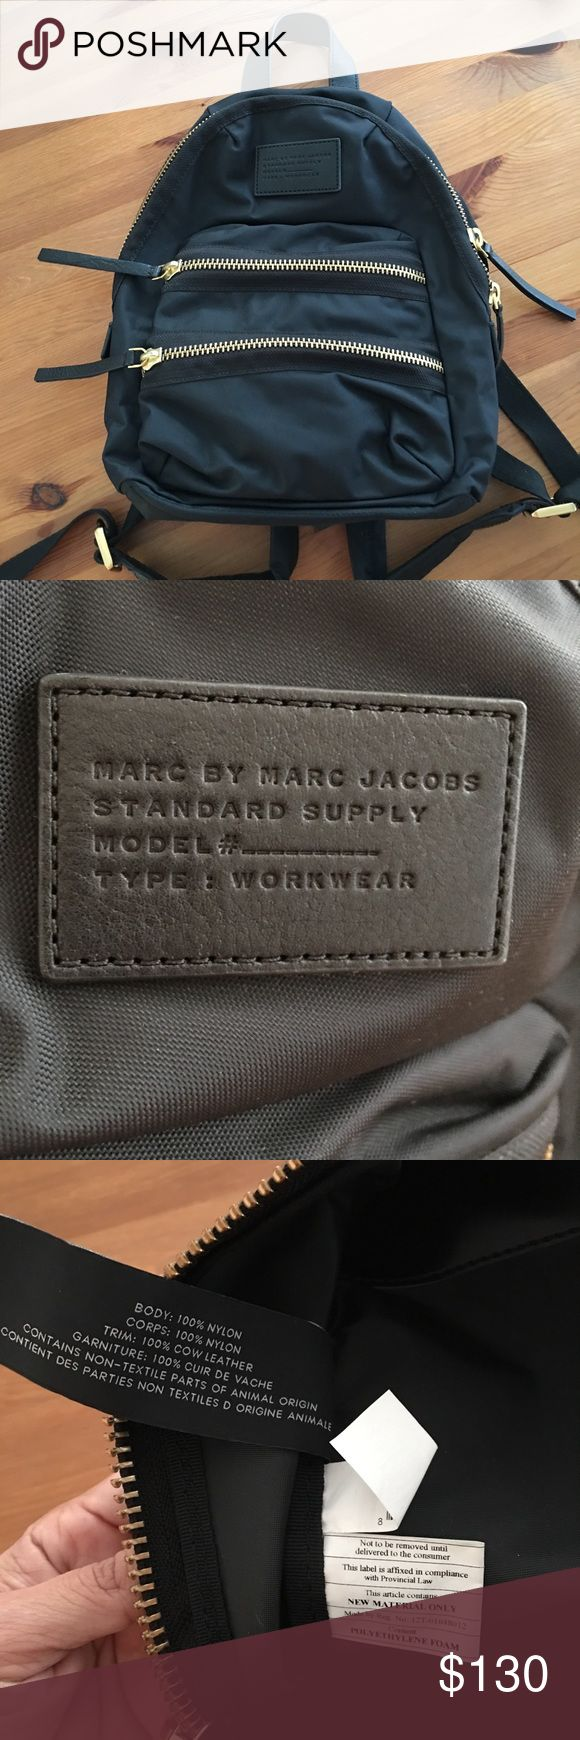 "Marc by Marc Jacobs Domo Arigato Mini Backpack Authentic Marc by Marc Jacobs Domo Arigato Mini Packrat Canvas Backpack. In great condition! Only used twice.   - Canvas and leather - Chunky zipper fastening - 2x zipper pockets - H: 12.25"", W: 10"", D: 4"" Marc By Marc Jacobs Bags Backpacks"